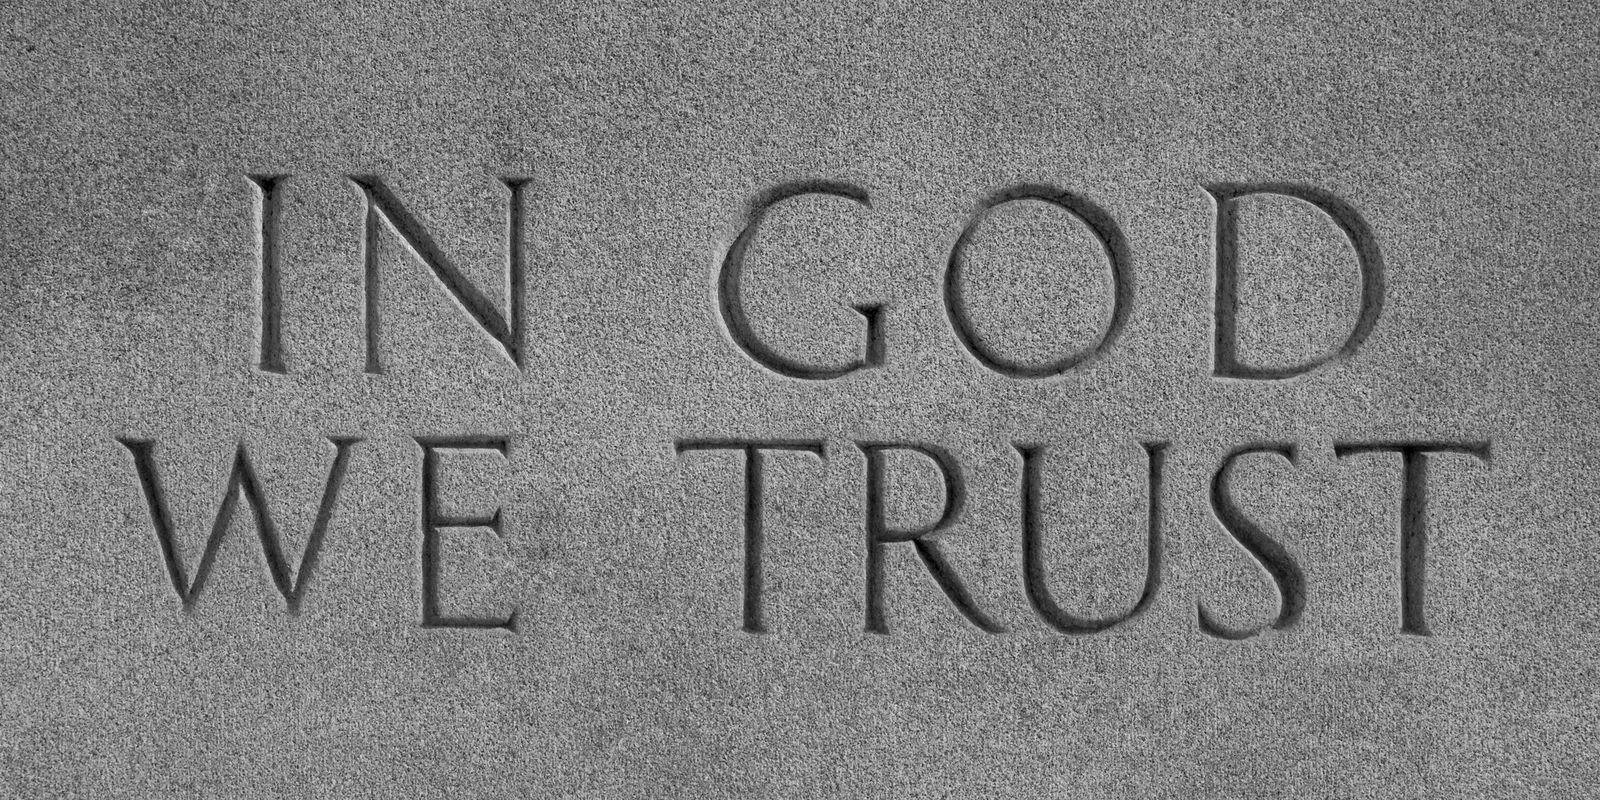 Arkansas schools to display In God we trust posters over objections